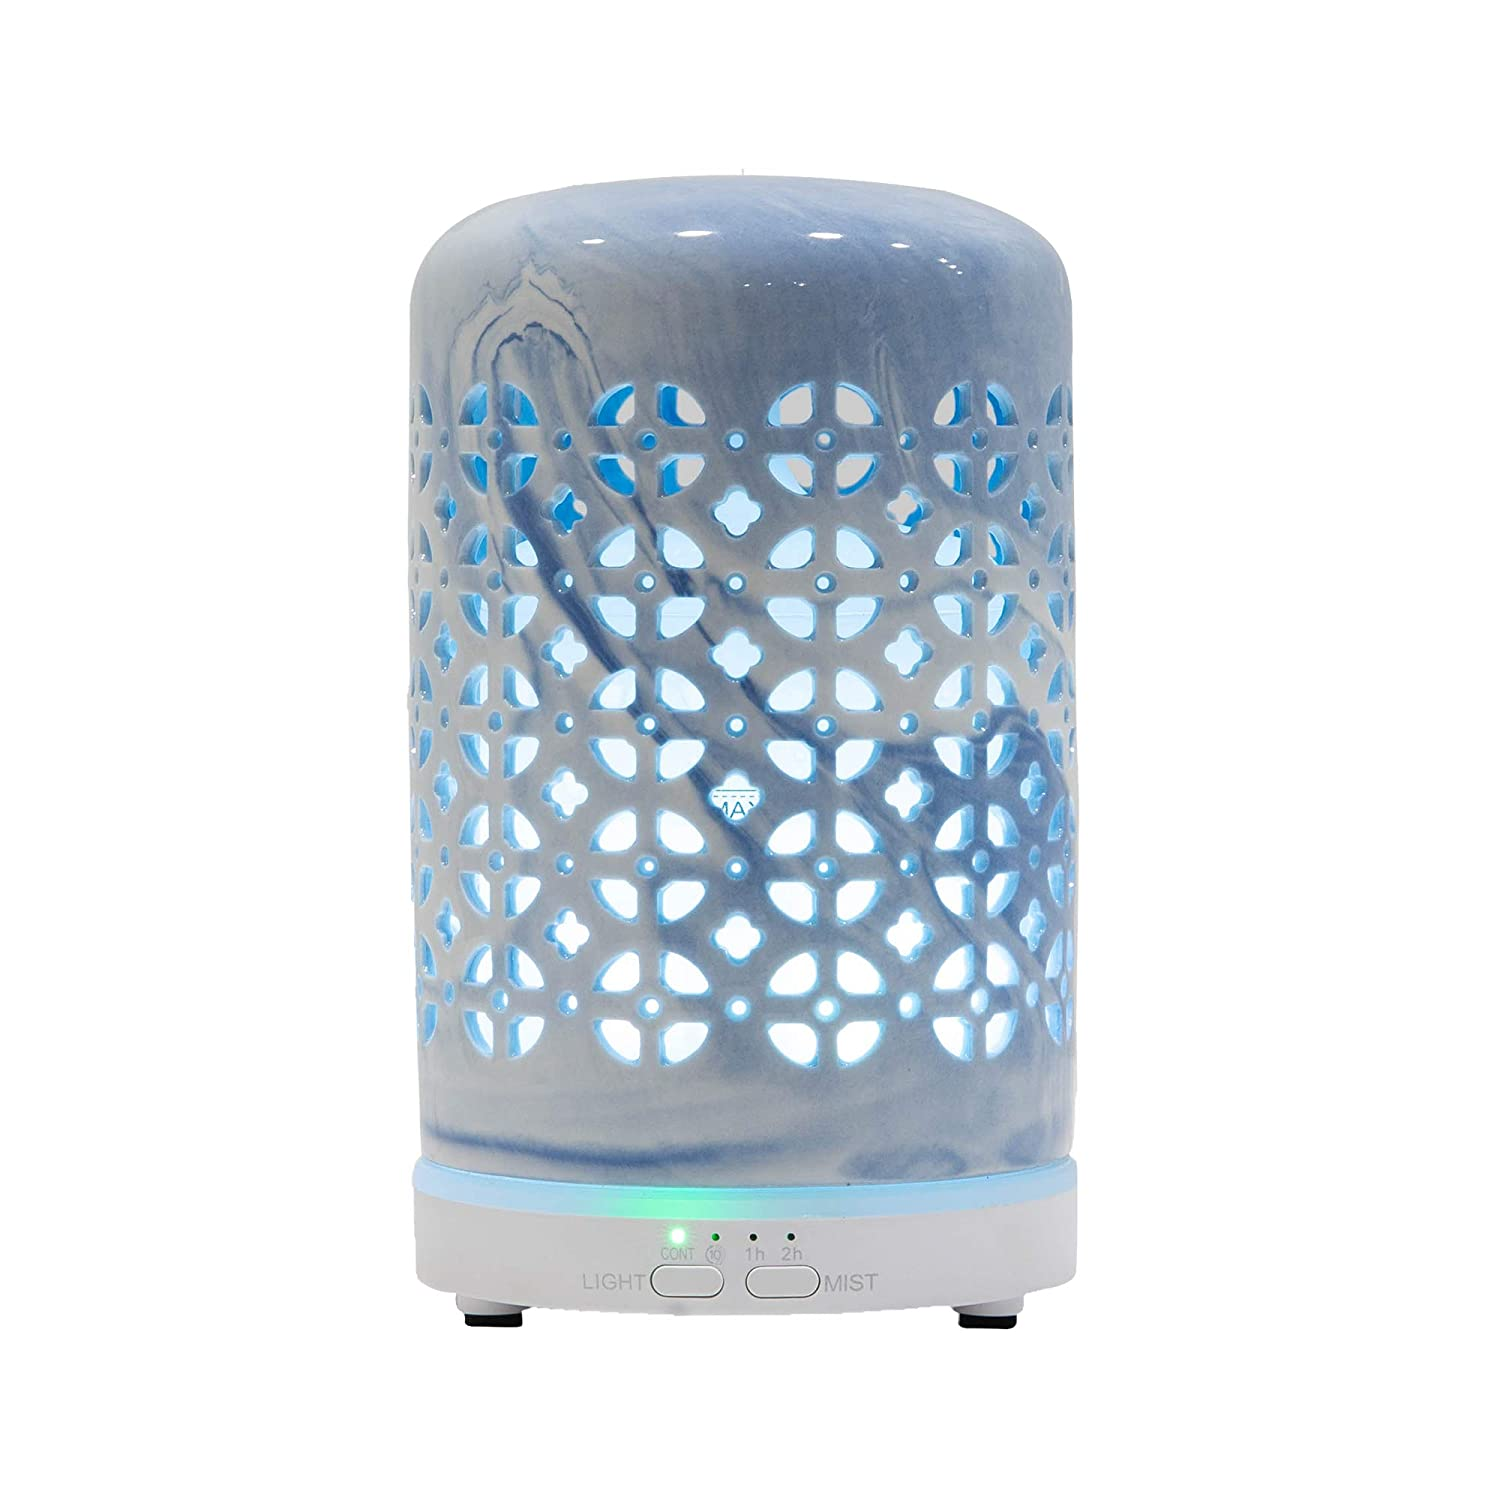 HAWOO Ceramic Oil Diffusers for Essential Oils for Home, Small Vintage Aromatherapy Diffuser with Auto Shut-Off Protection, 7 Color Changing Light, Cool Mist Humidifier for Office Bedroom (Blue)